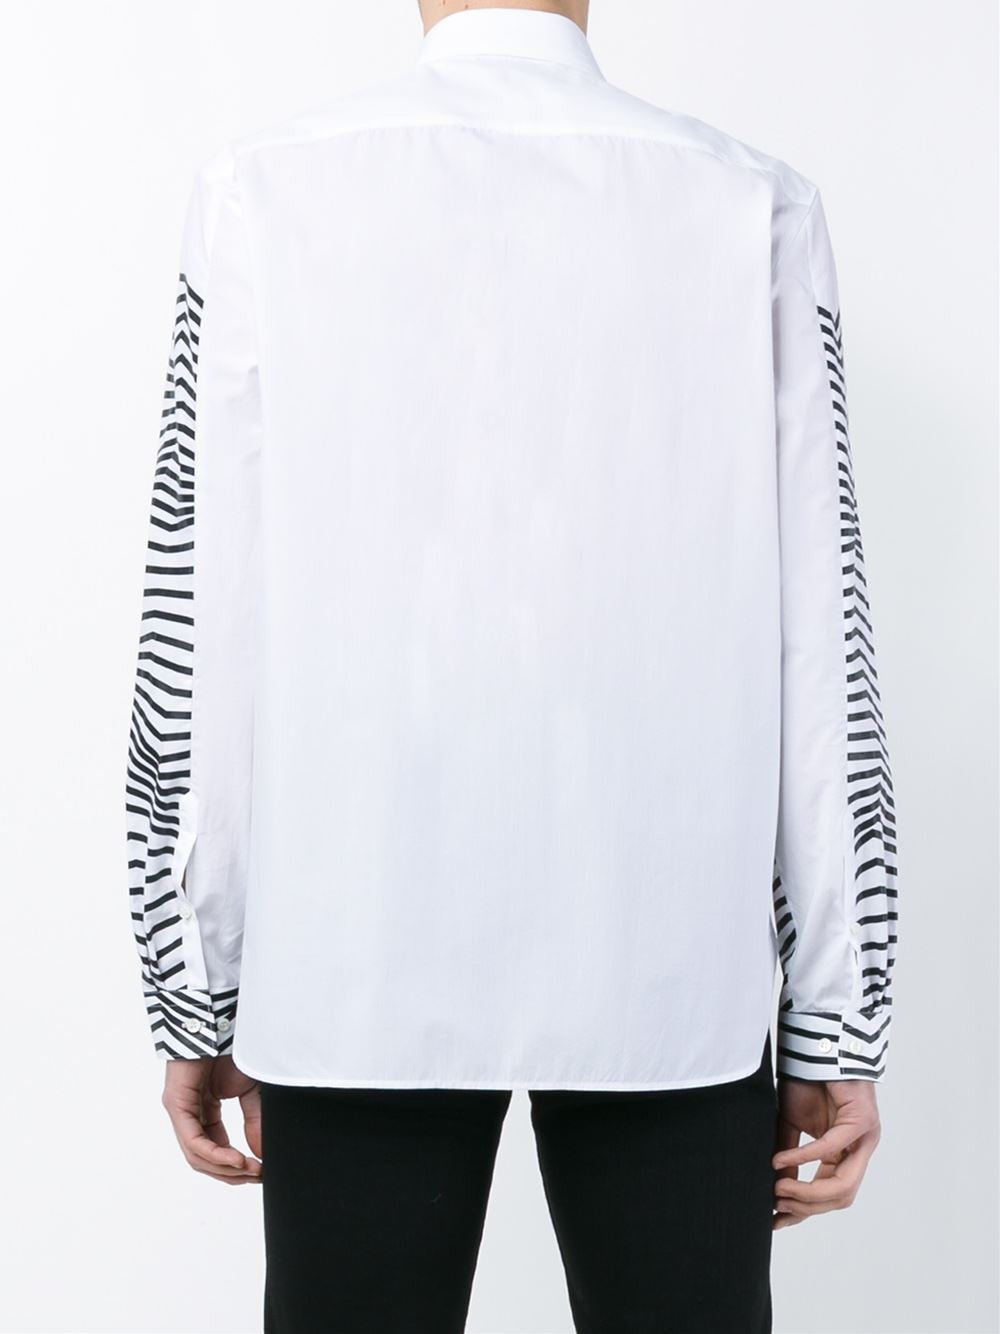 Graphic Shirt | BCM548 A028S